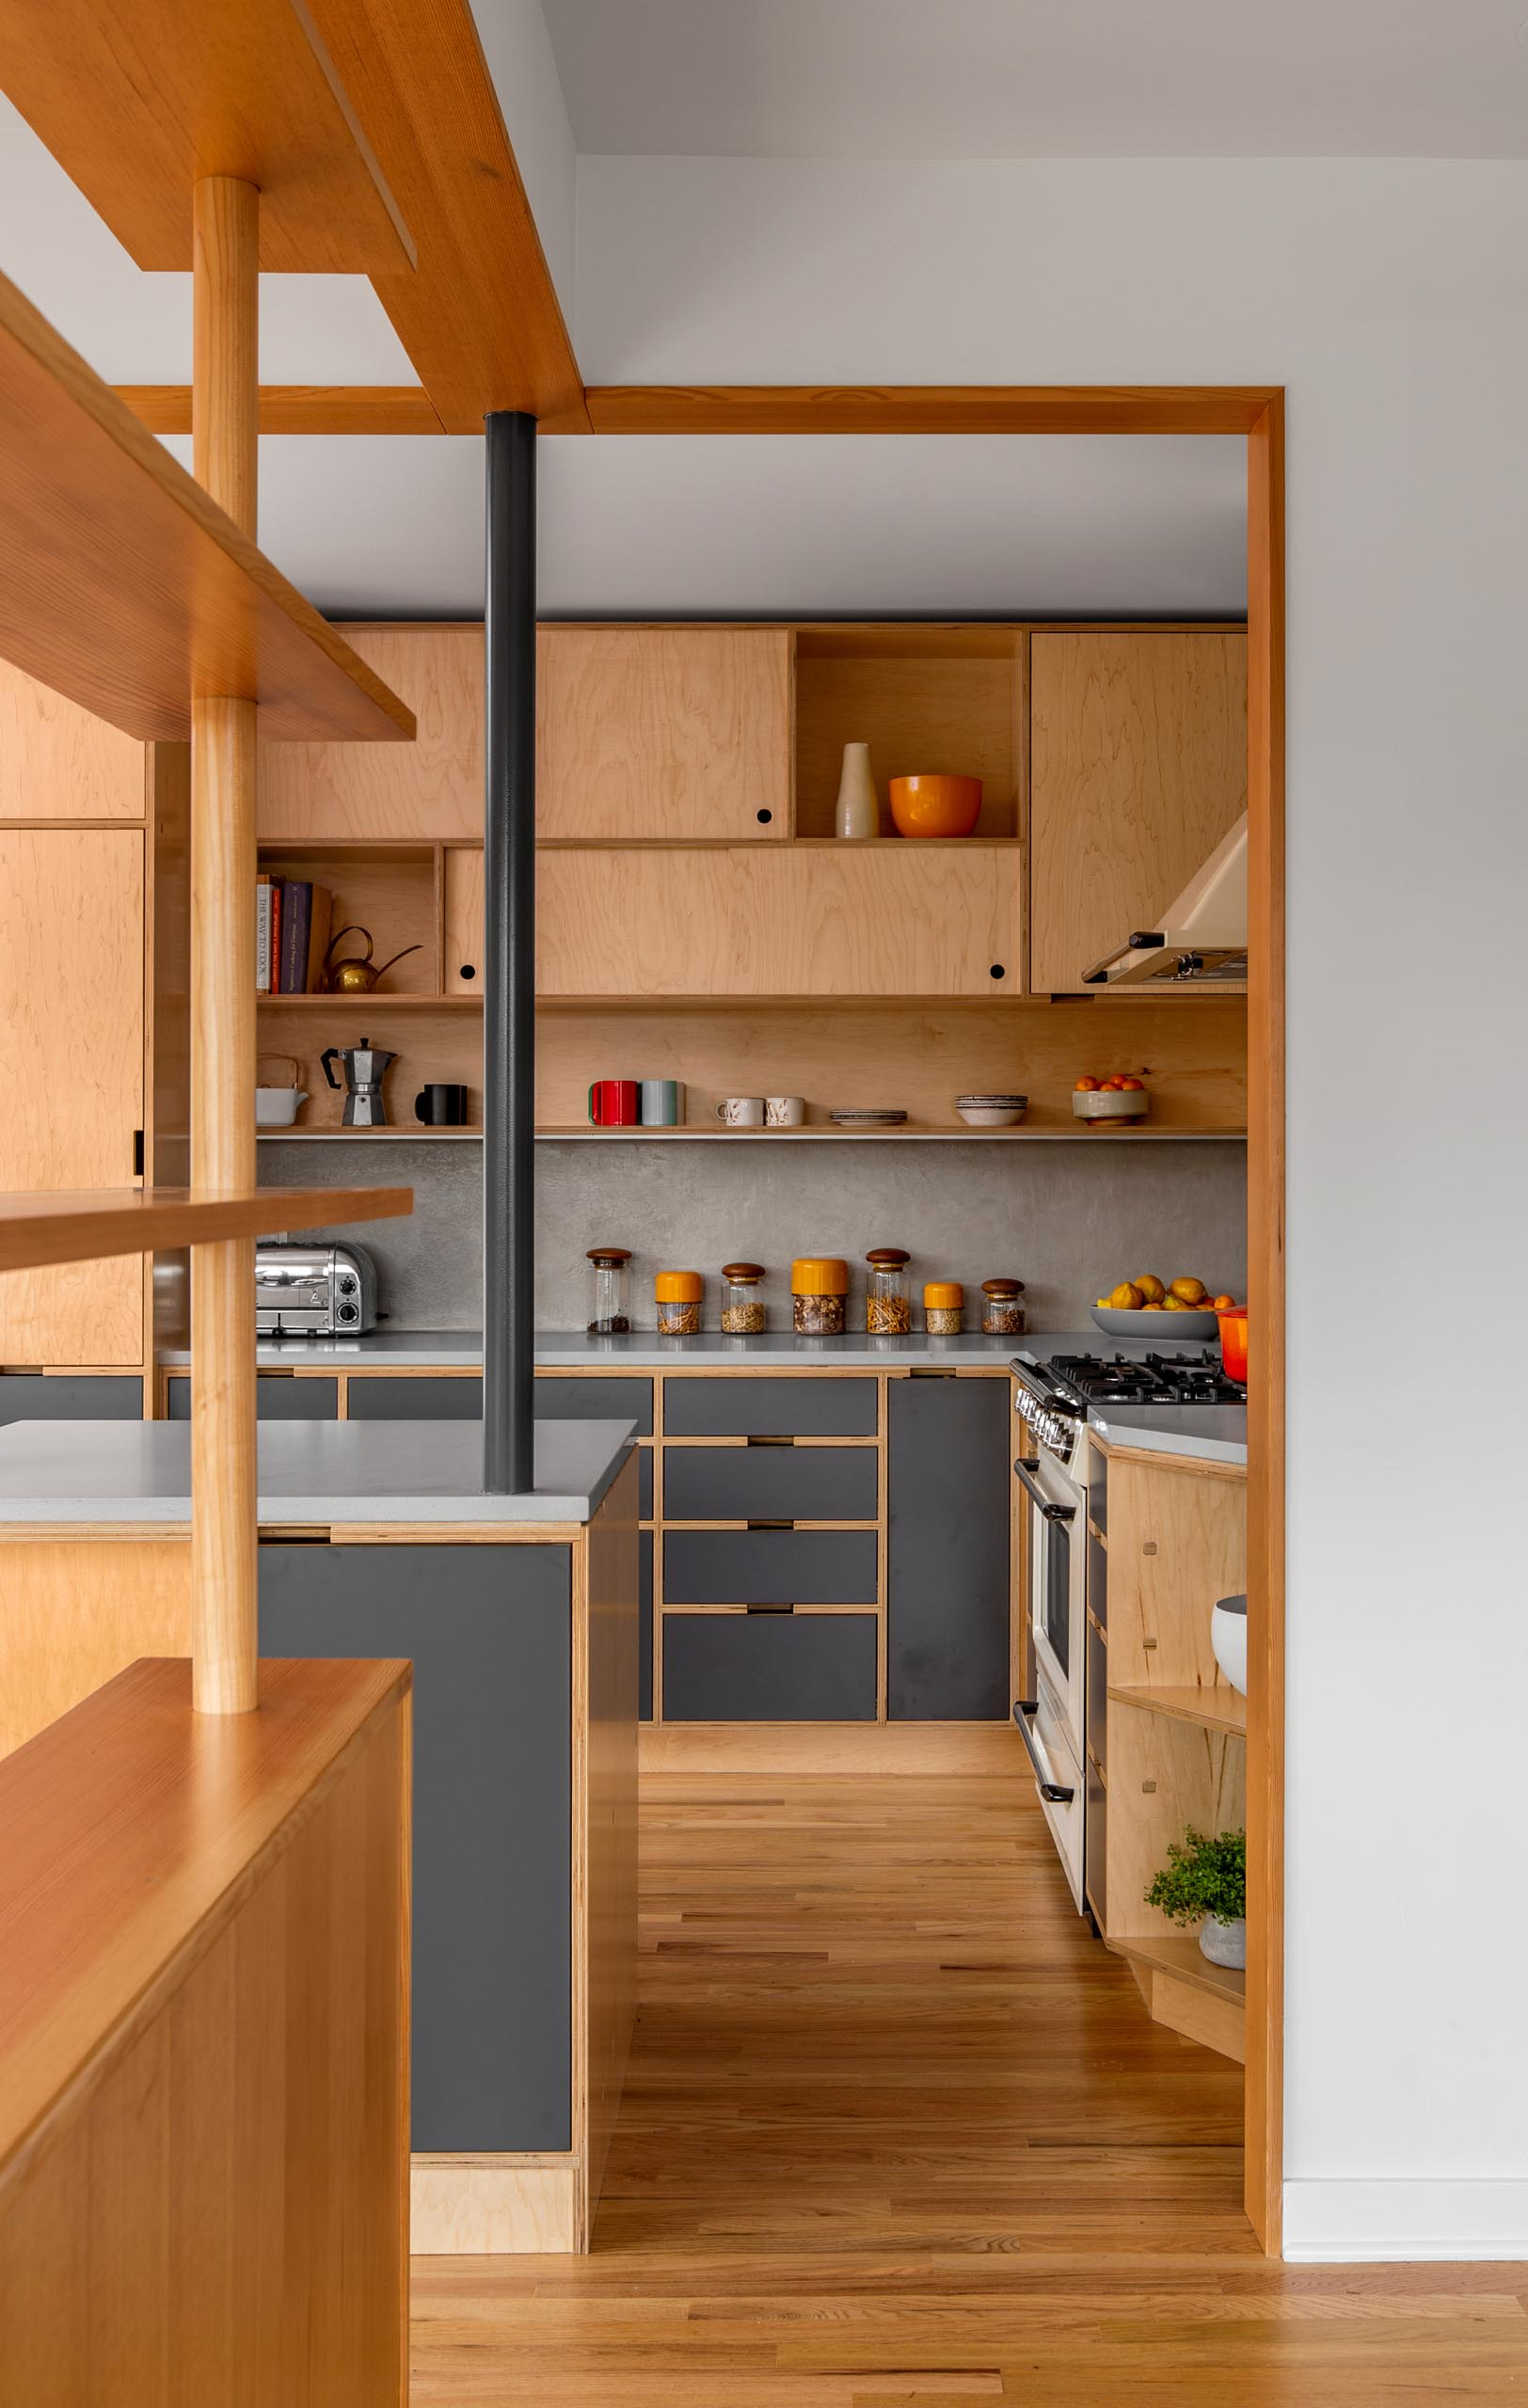 A modern custom-designed kitchen with wood and gray cabinets.